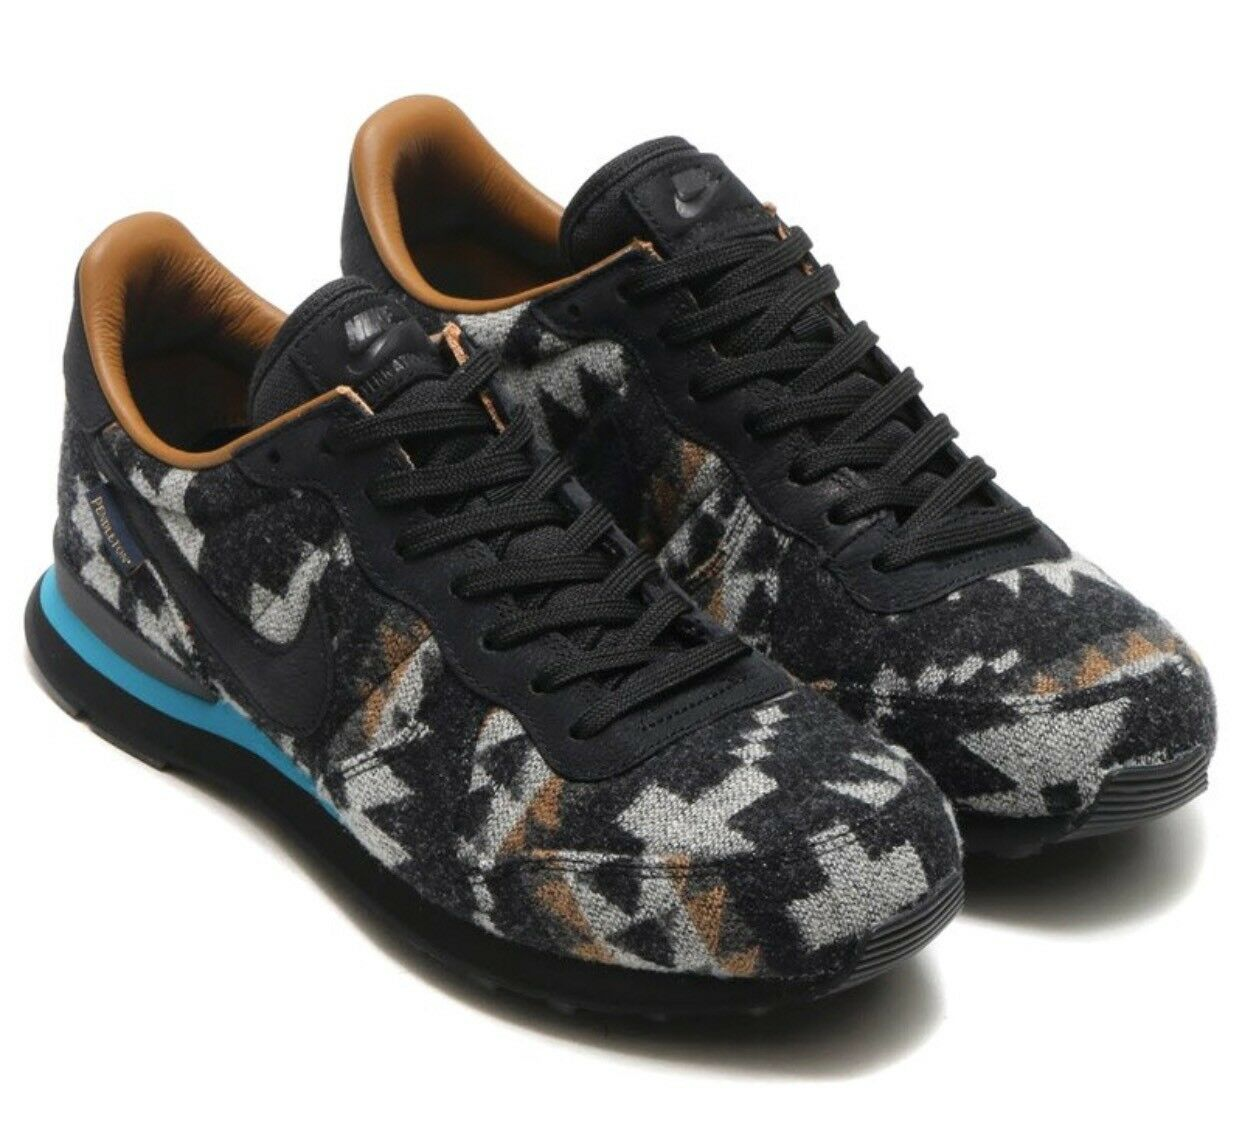 NIKE INTERNATIONALIST PND QS PENDLETON BLACK-STRATUS BLUE MENS 10 Orig. 140